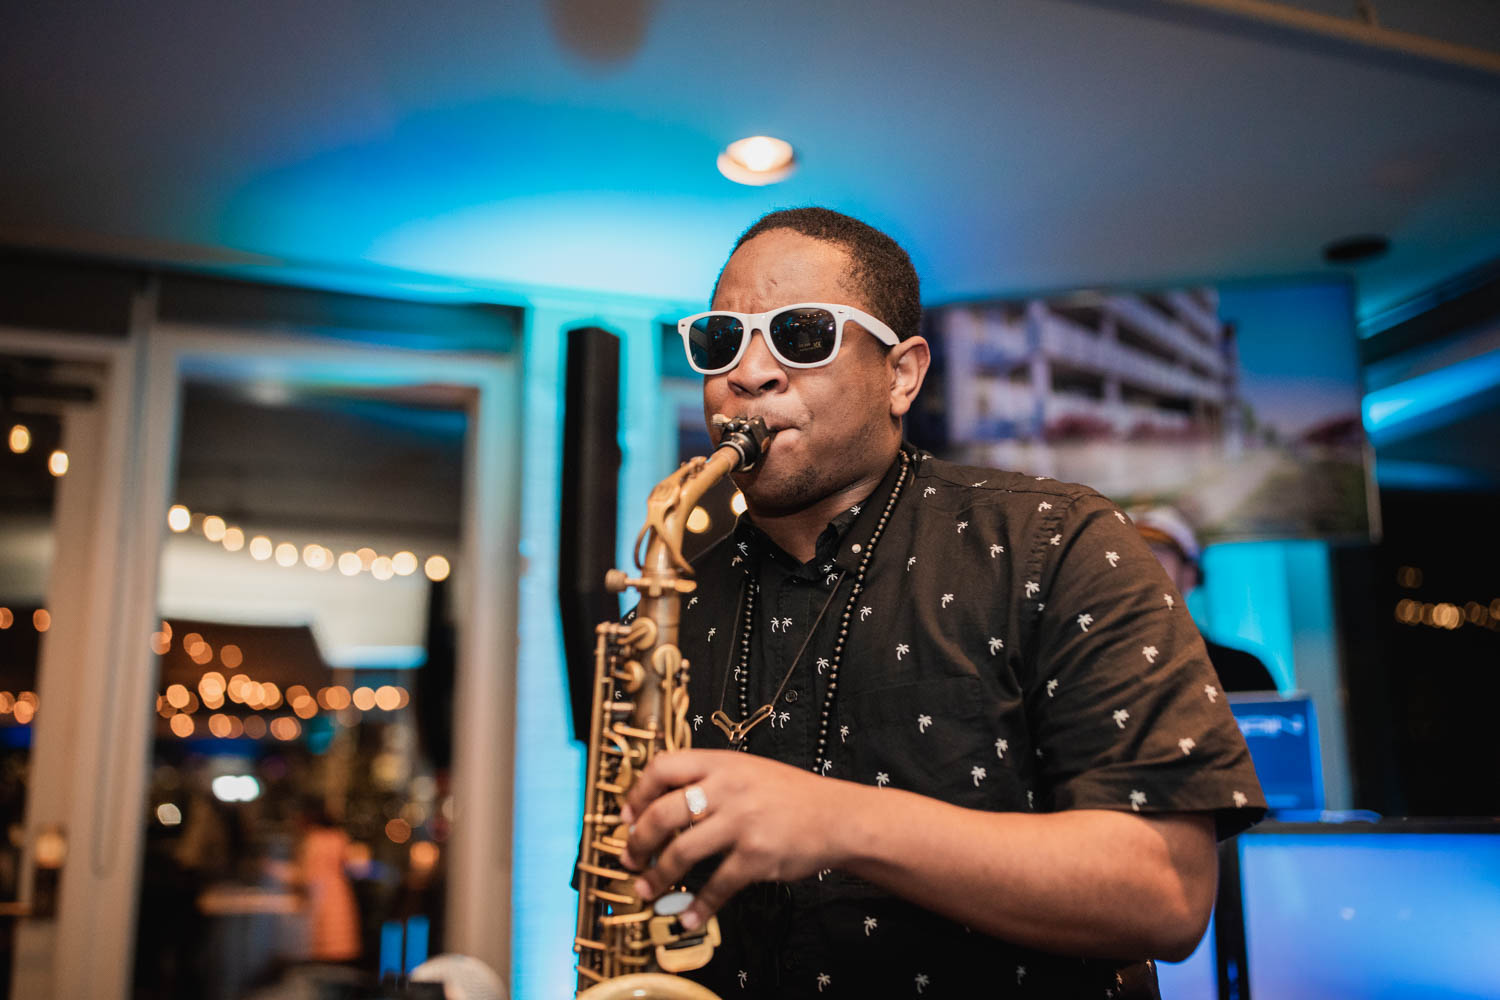 African-American man in sunglasses and black-and-white polka dot shirt plays the saxophone.